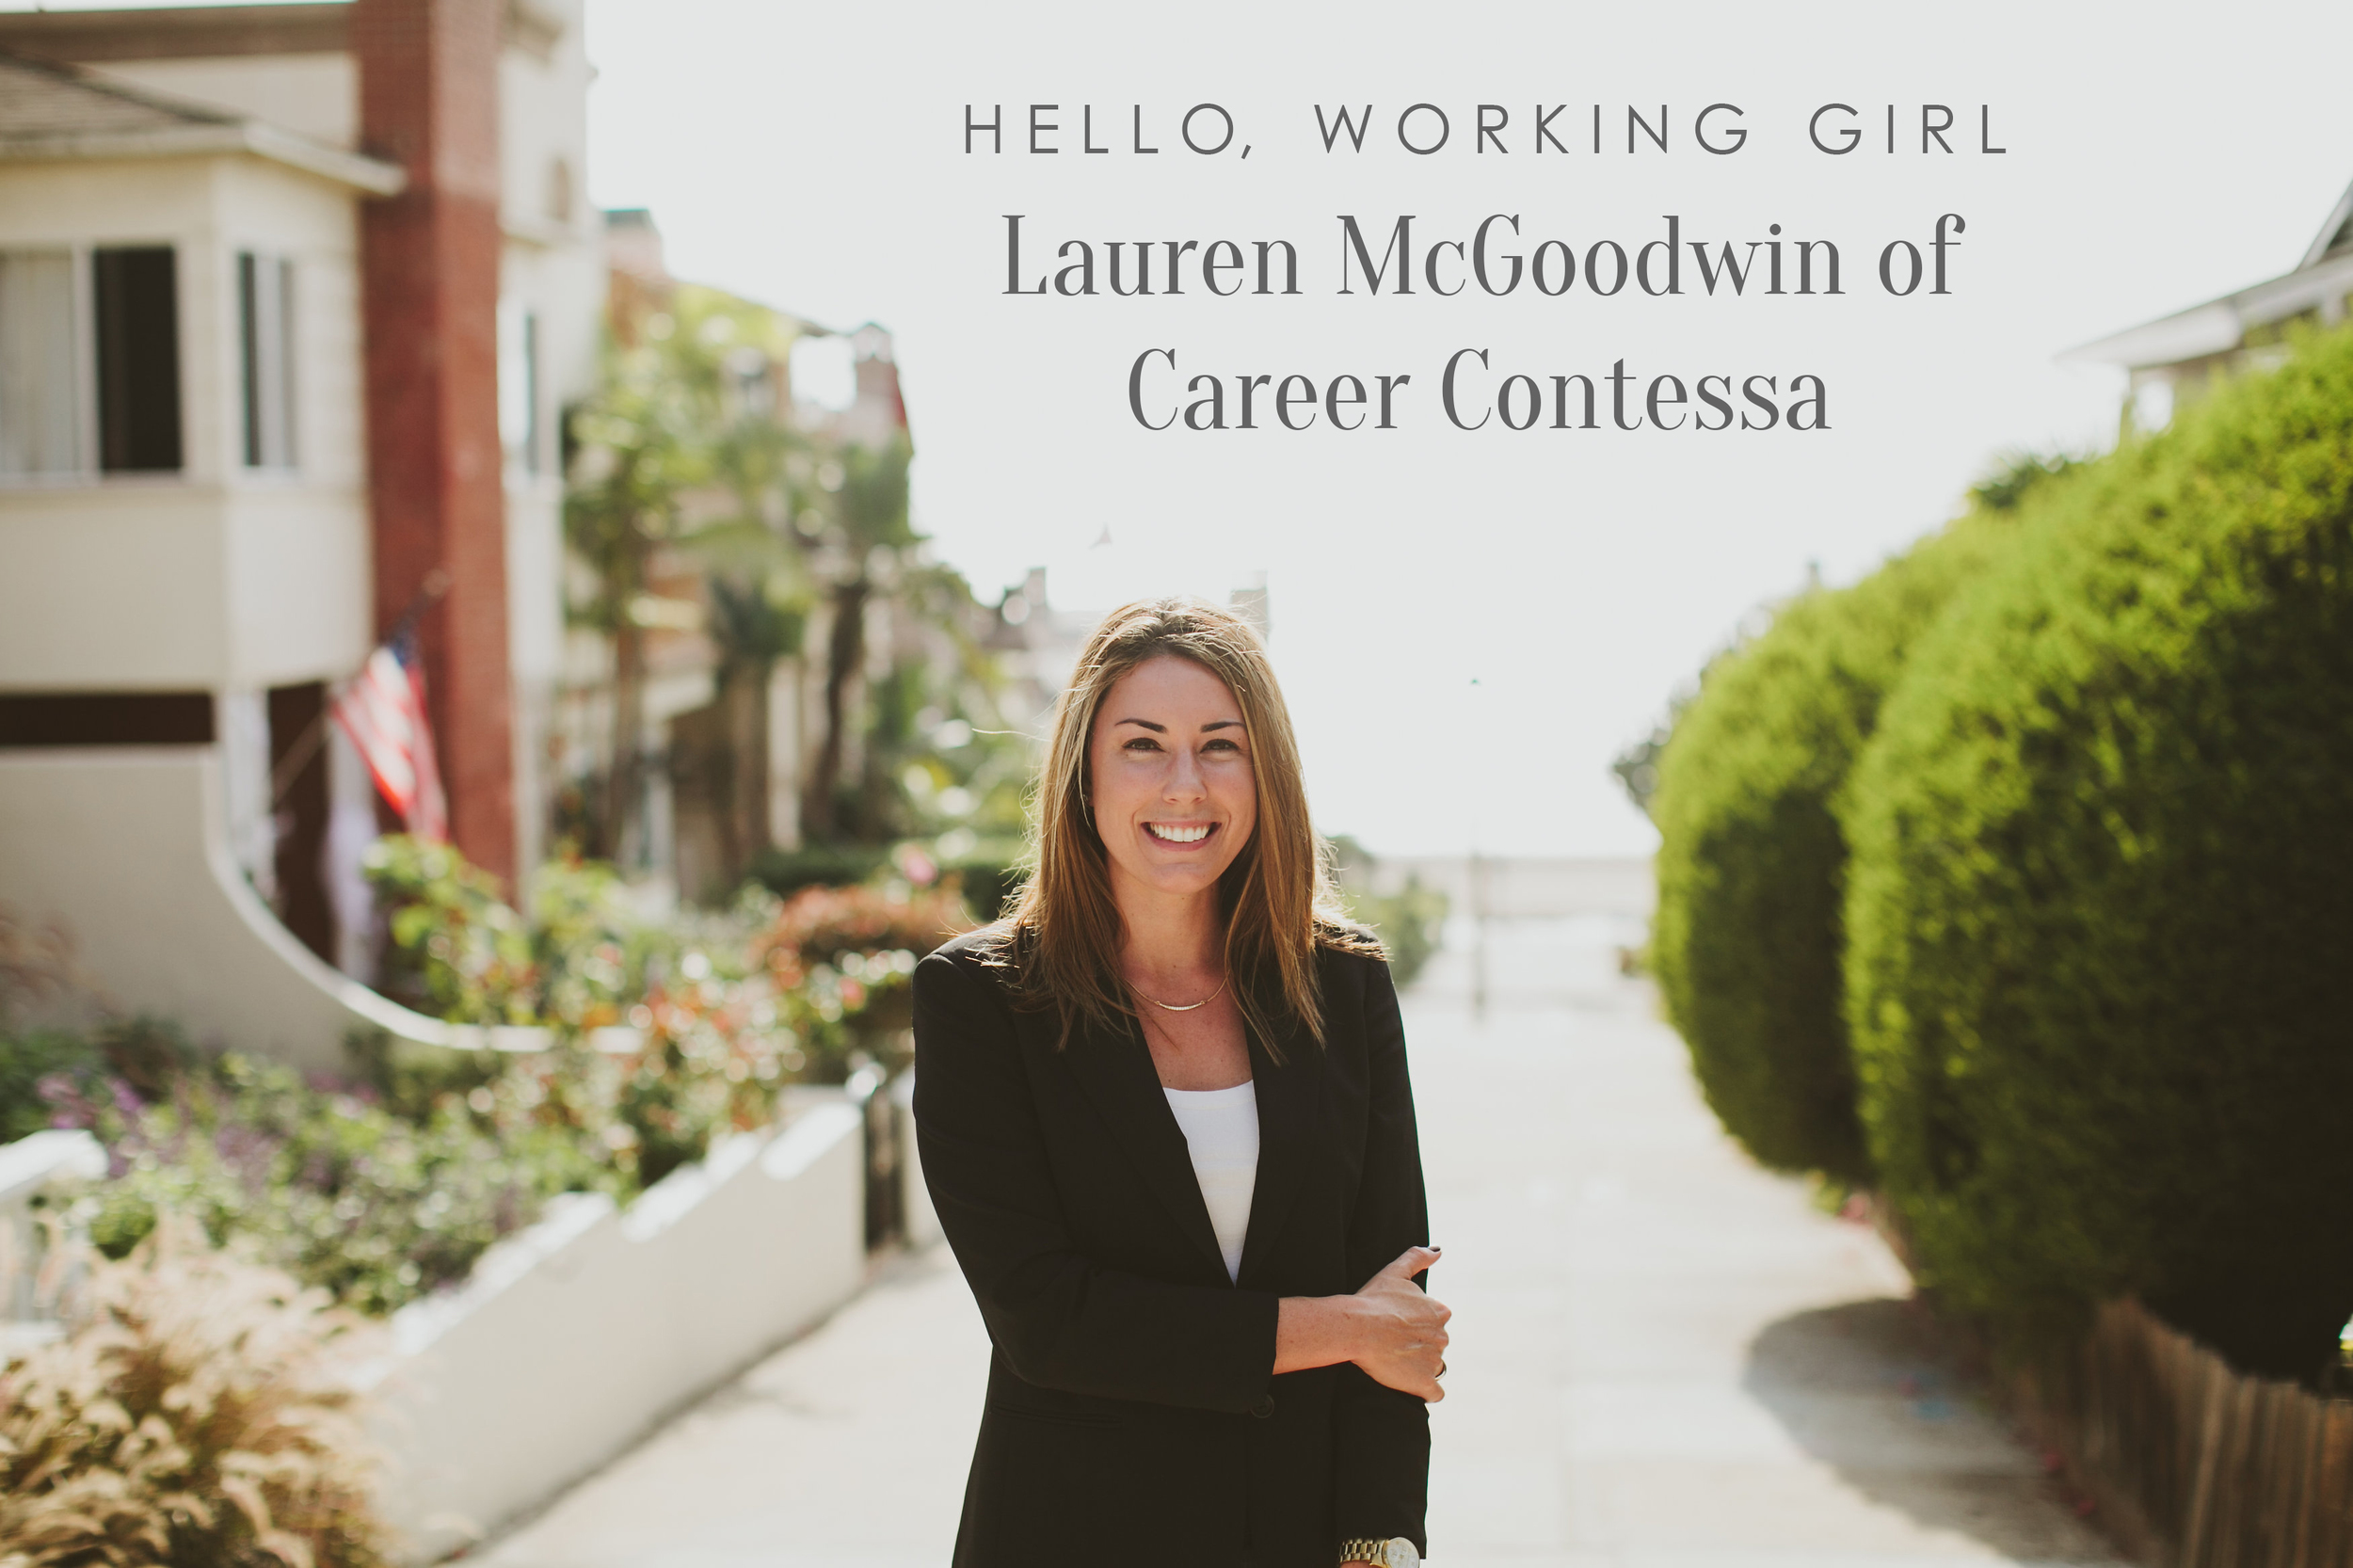 Hello, Working Girl: Lauren McGoodwin of Career Contessa